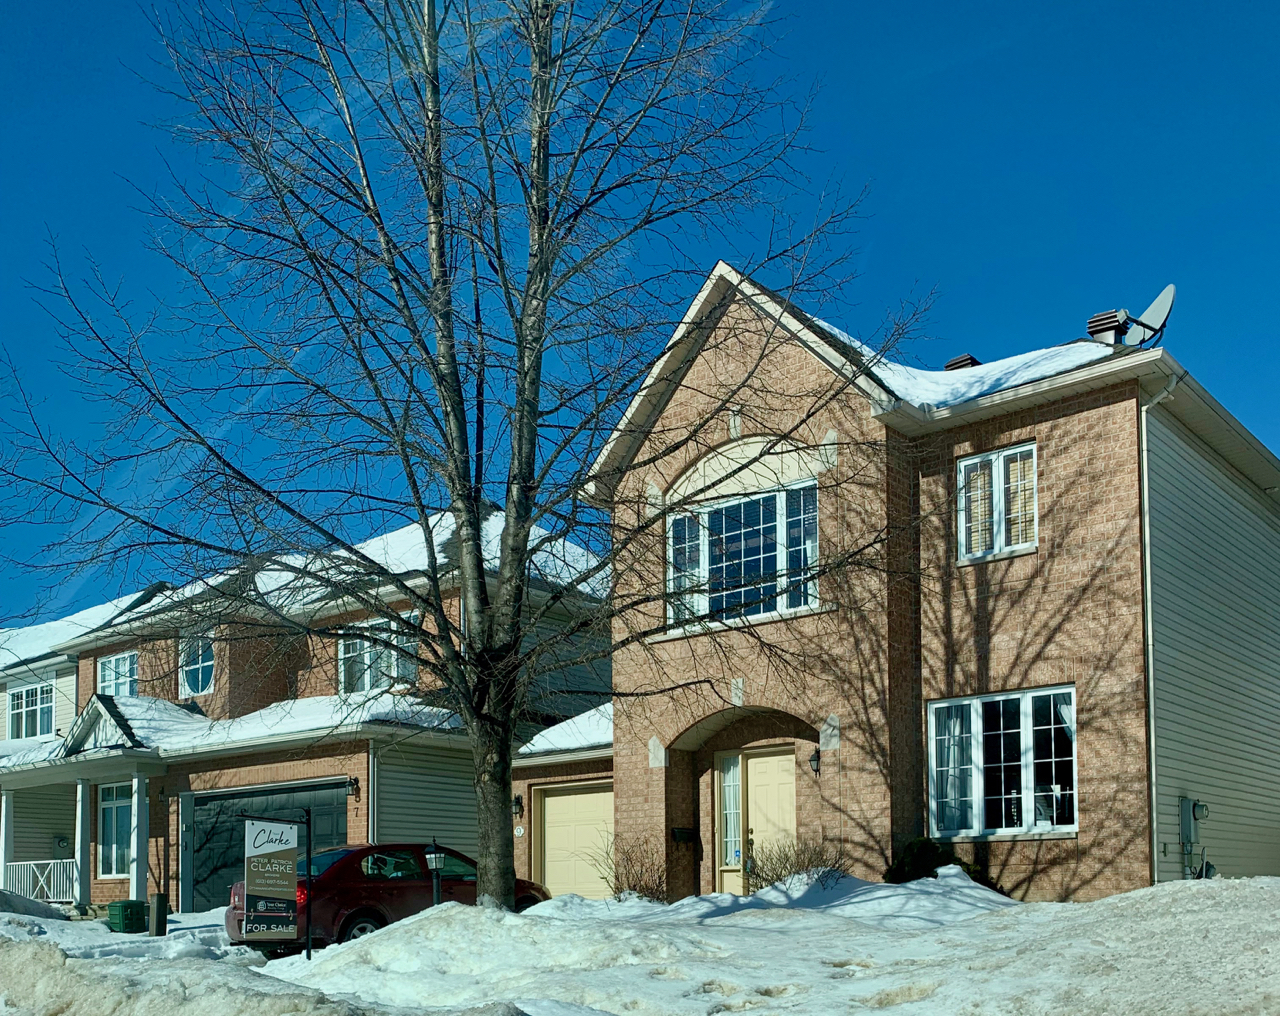 3 Bedroom Detached House in Barrhaven $445,000